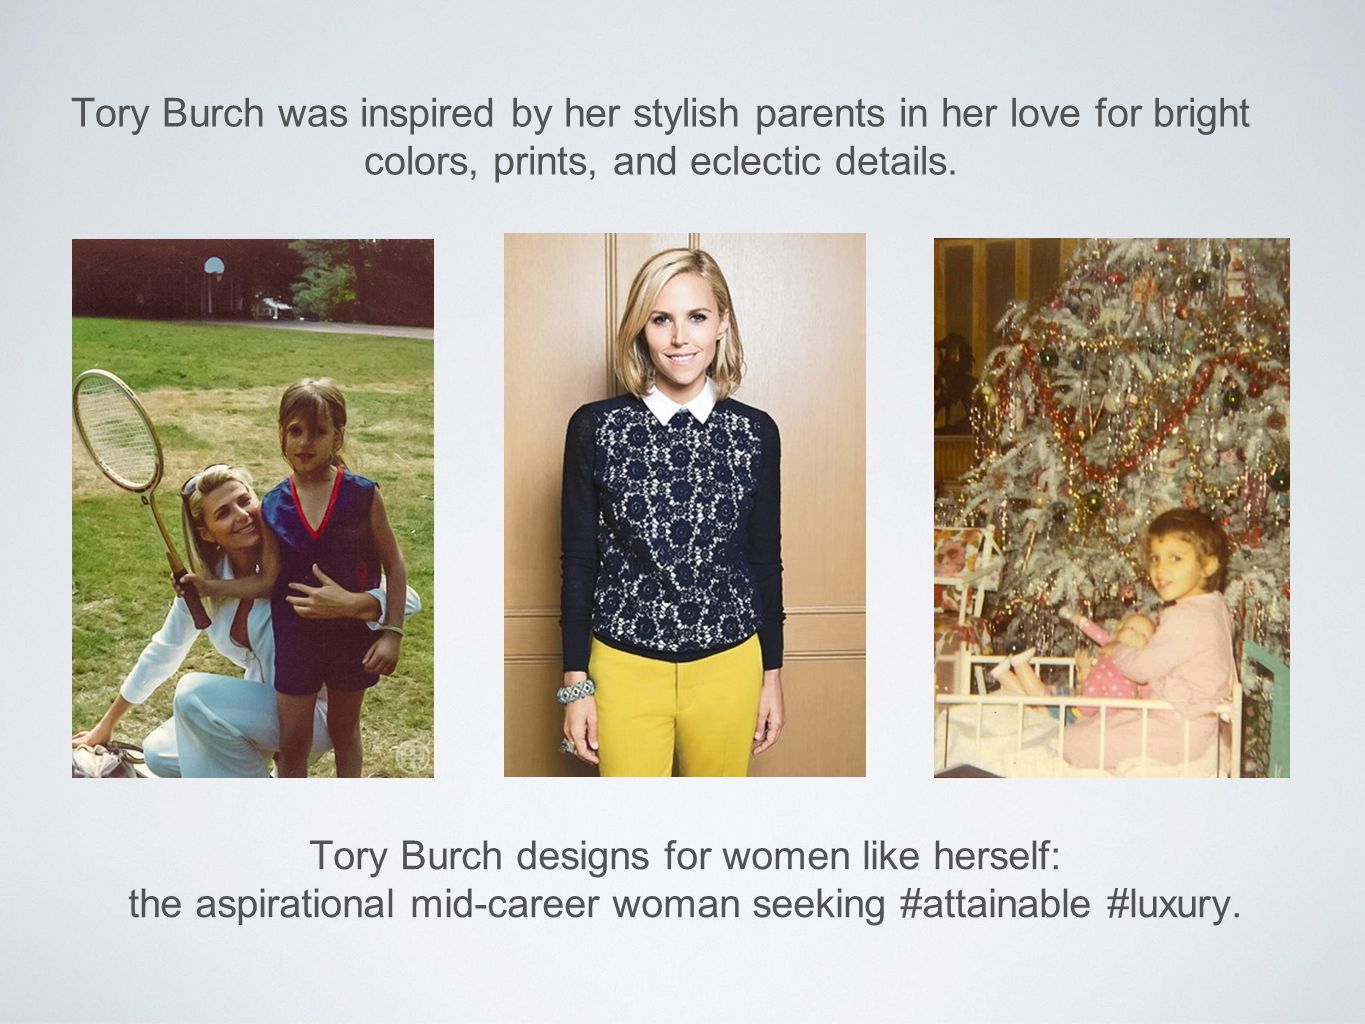 Tory Burch designs for women like herself: the aspirational mid-career woman seeking #attainable #luxury.